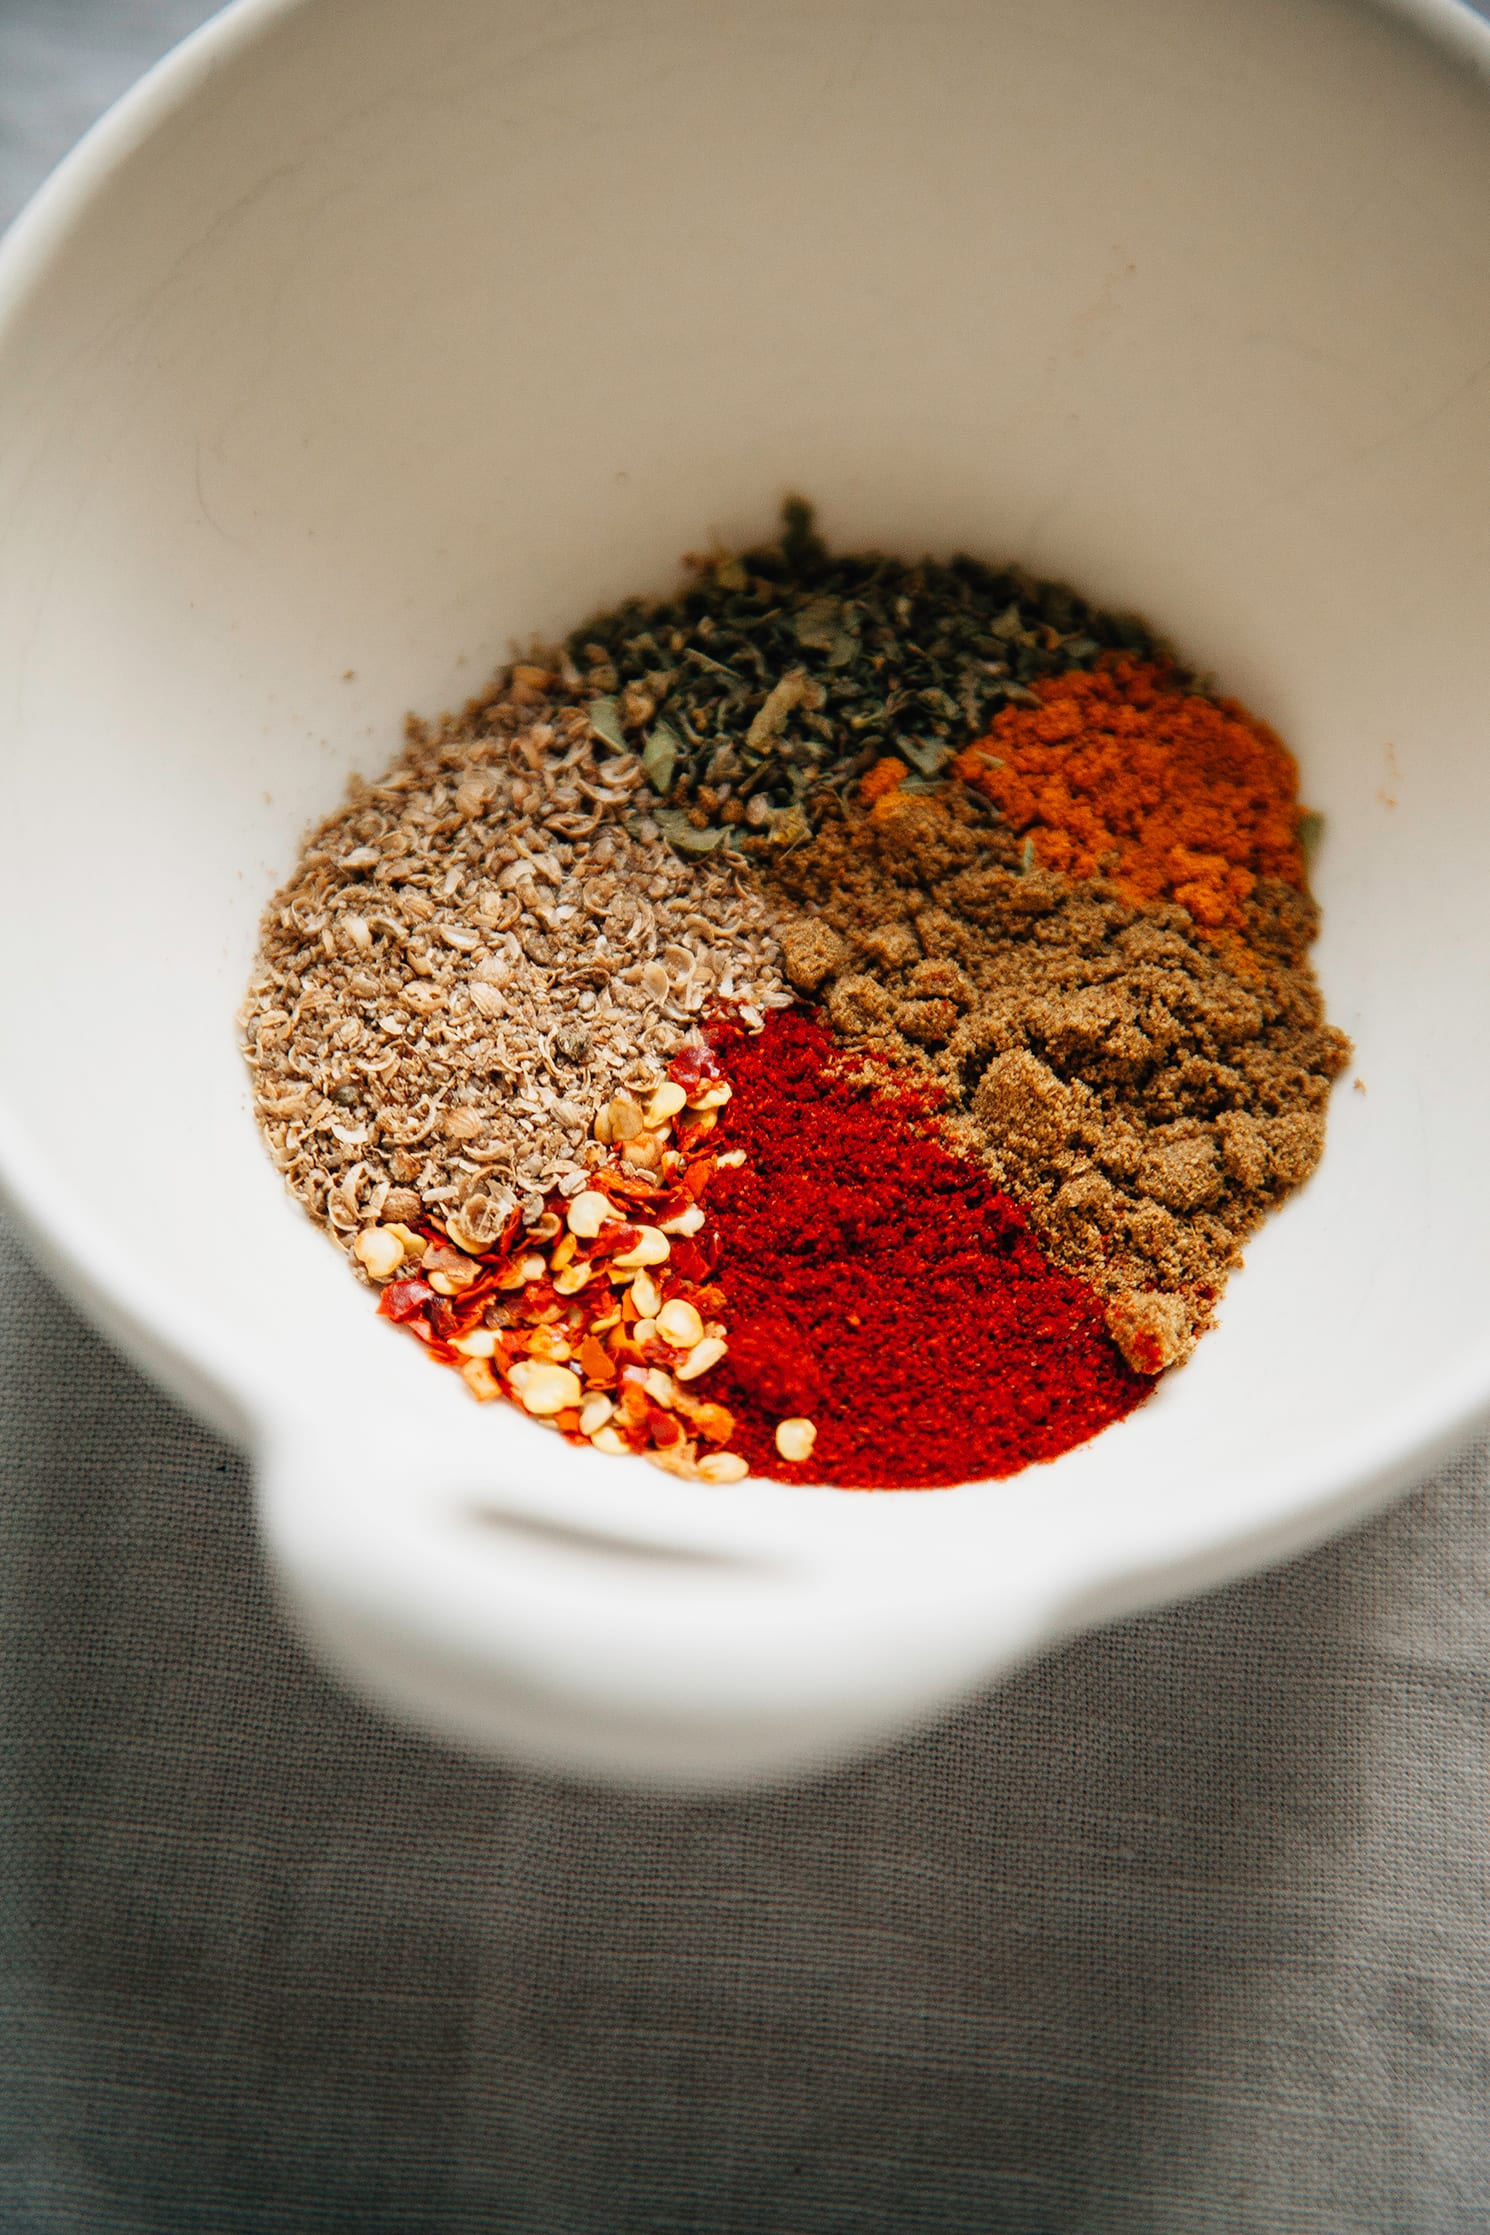 An up close shot of ground spices in a white bowl.